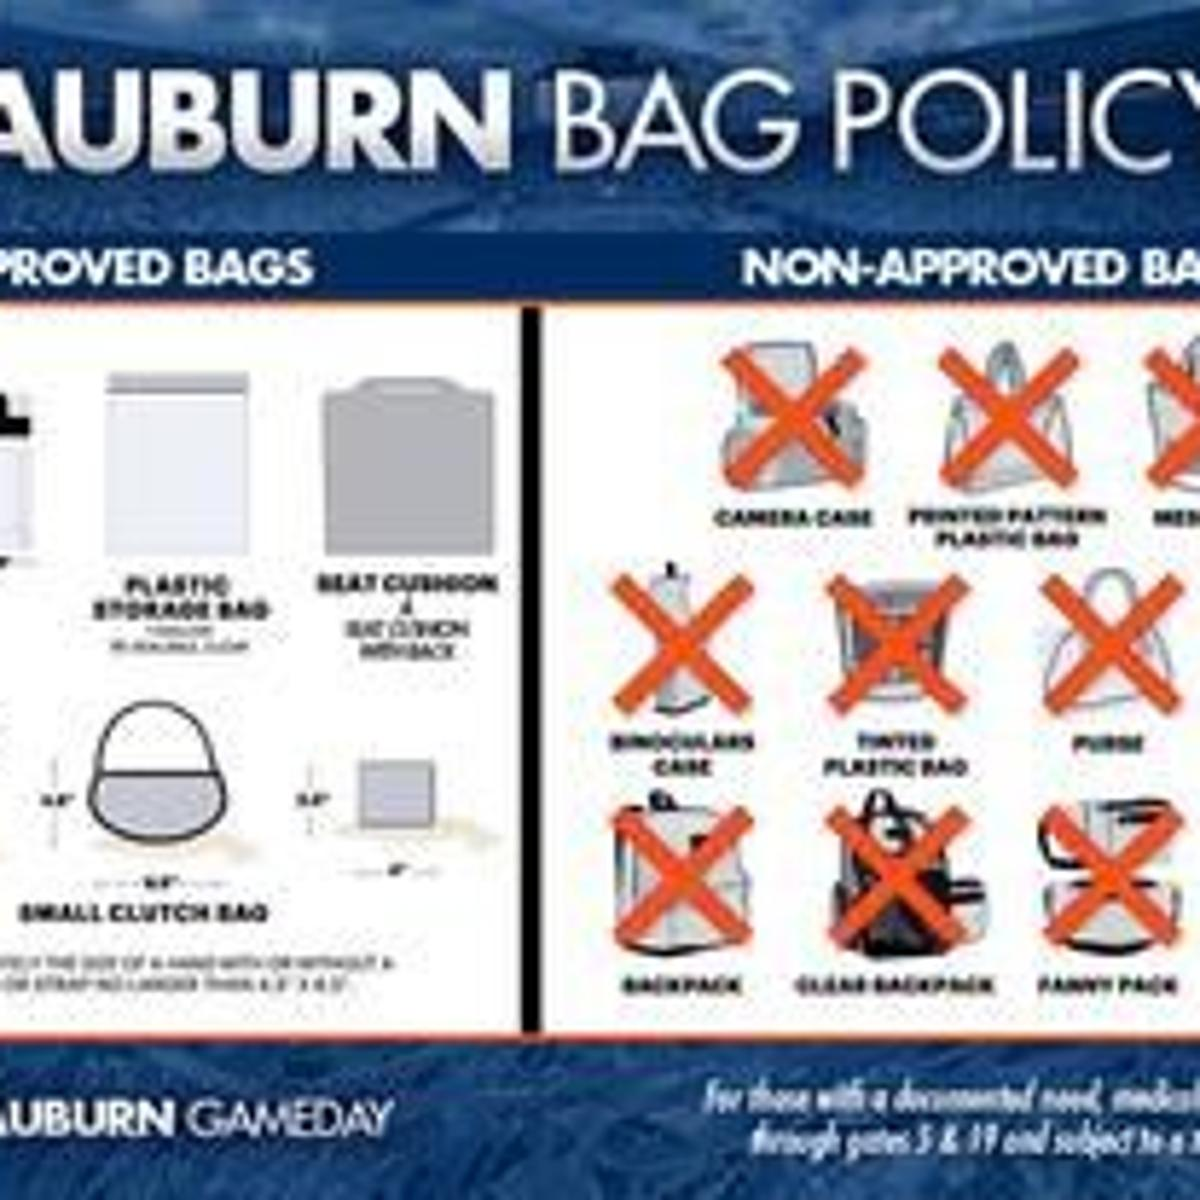 Clear bag policy opens up at sold-out home opener as Toomer's Oaks